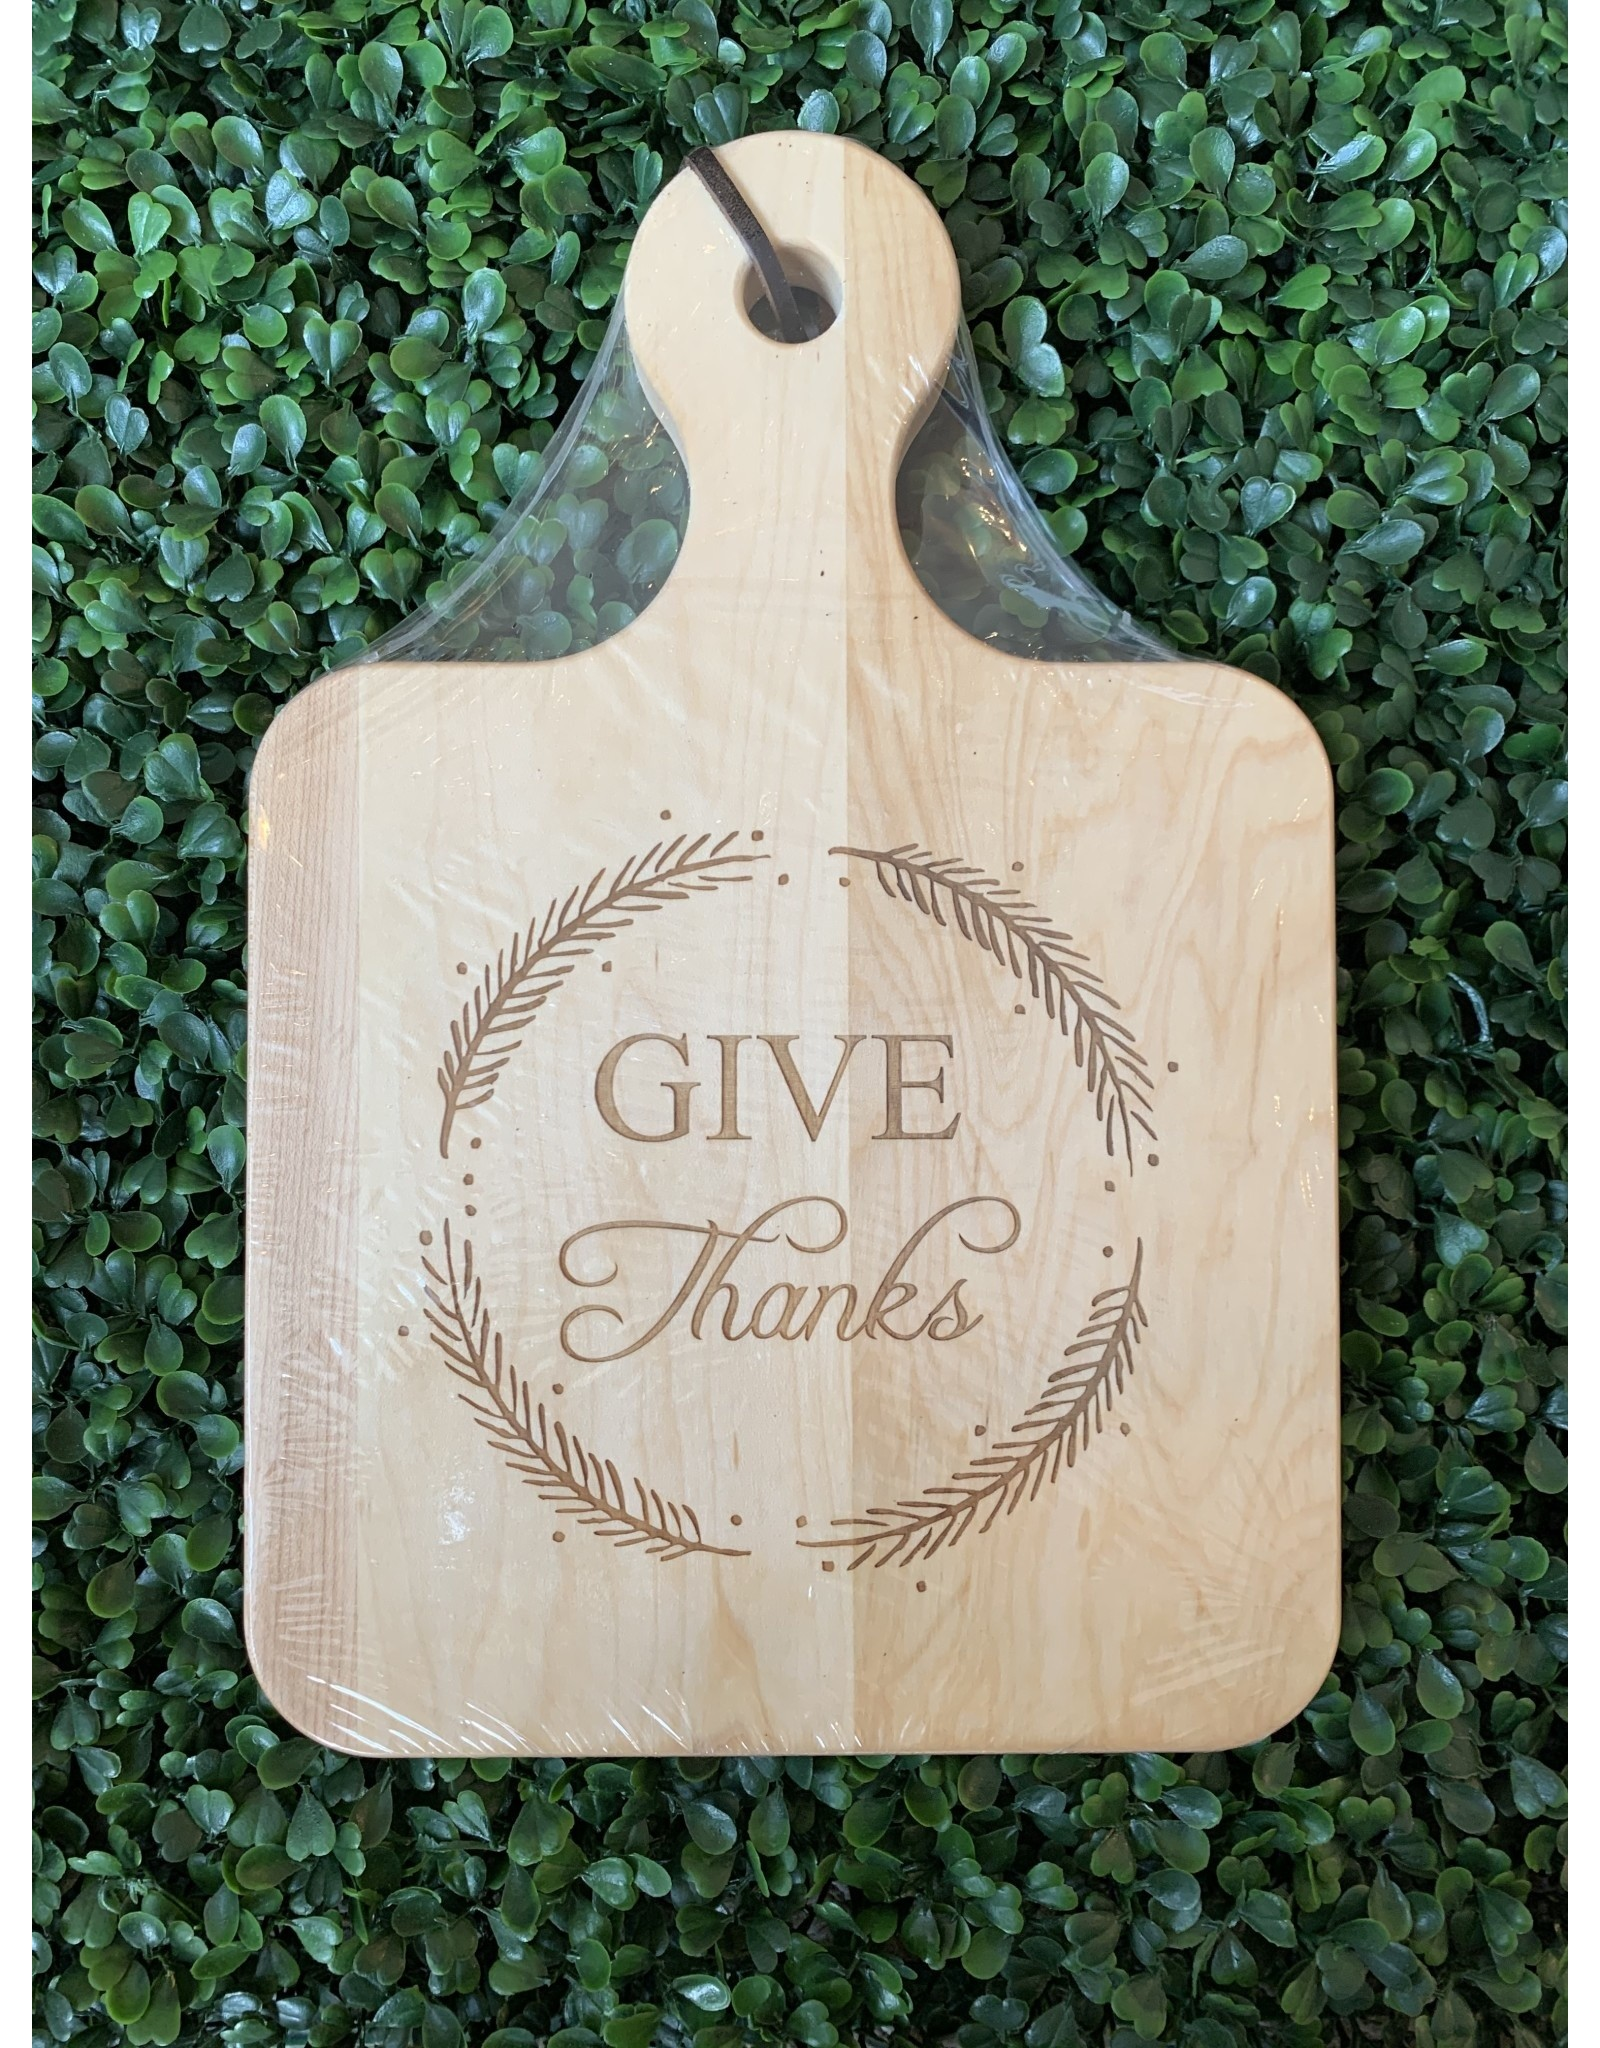 Maple Leaf at Home Give Thanks 12x8 Maple Artisan Board